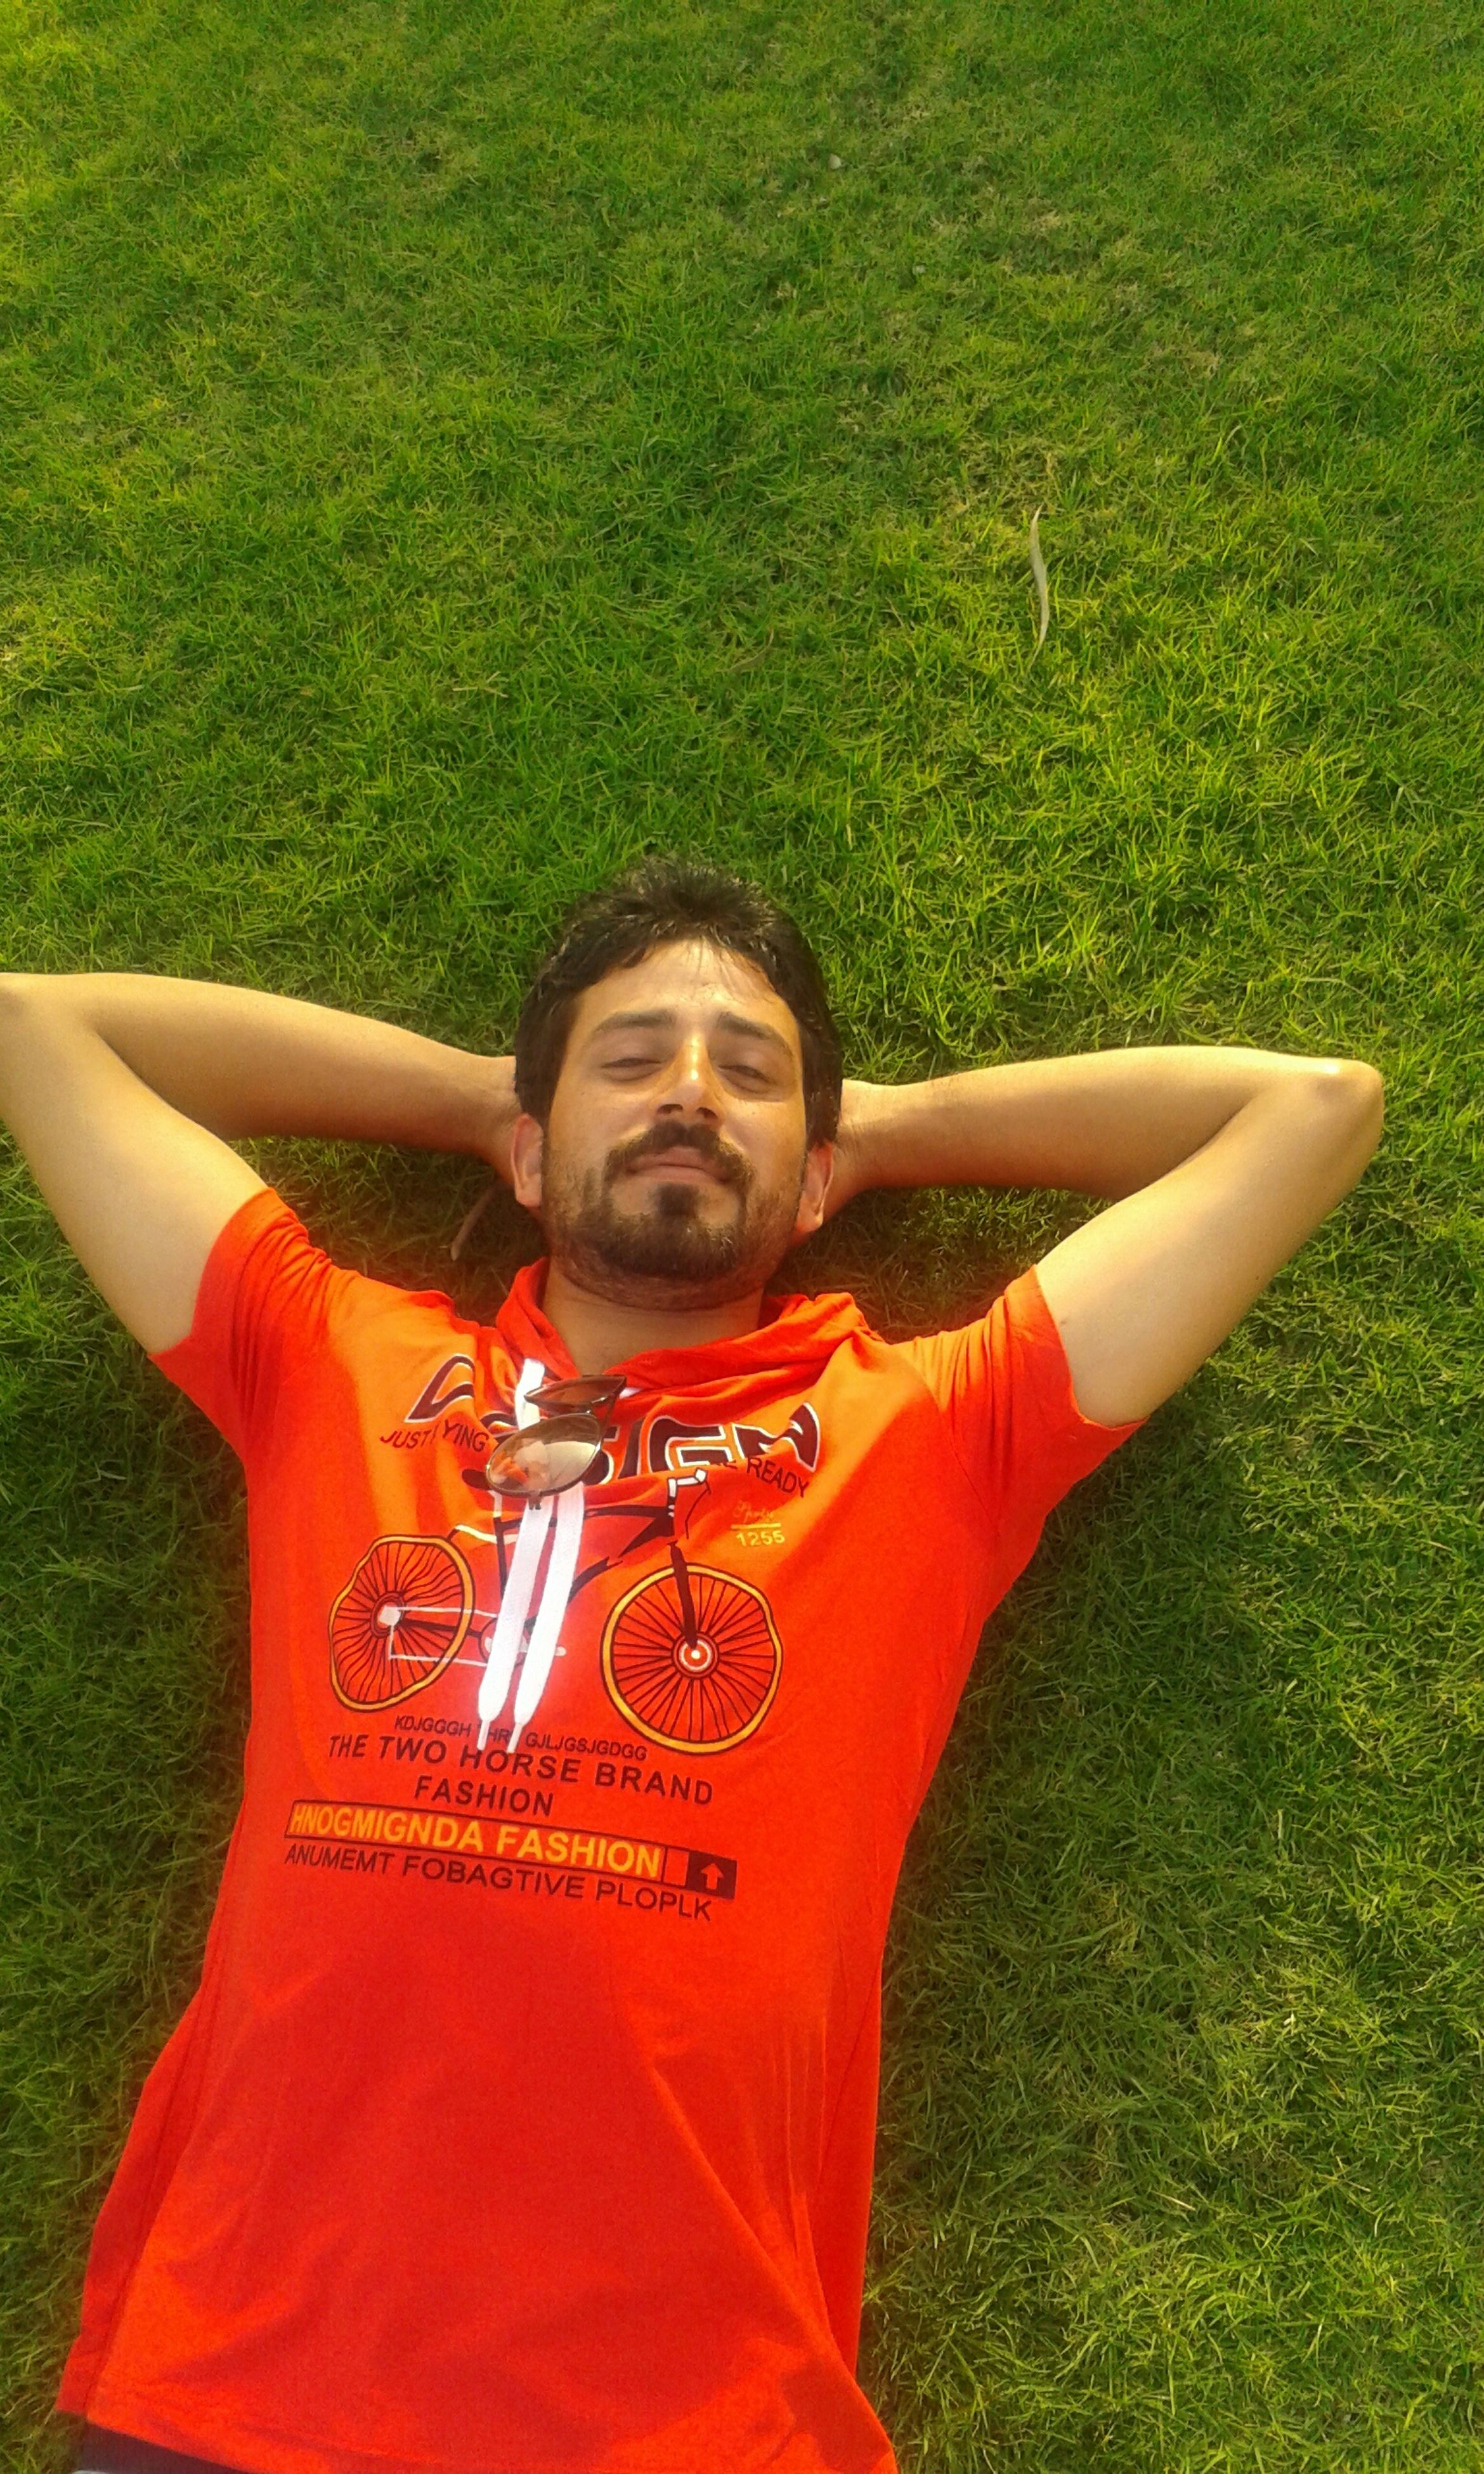 grass, leisure activity, lifestyles, green color, person, relaxation, grassy, sitting, casual clothing, field, childhood, red, looking at camera, smiling, park - man made space, front view, portrait, high angle view